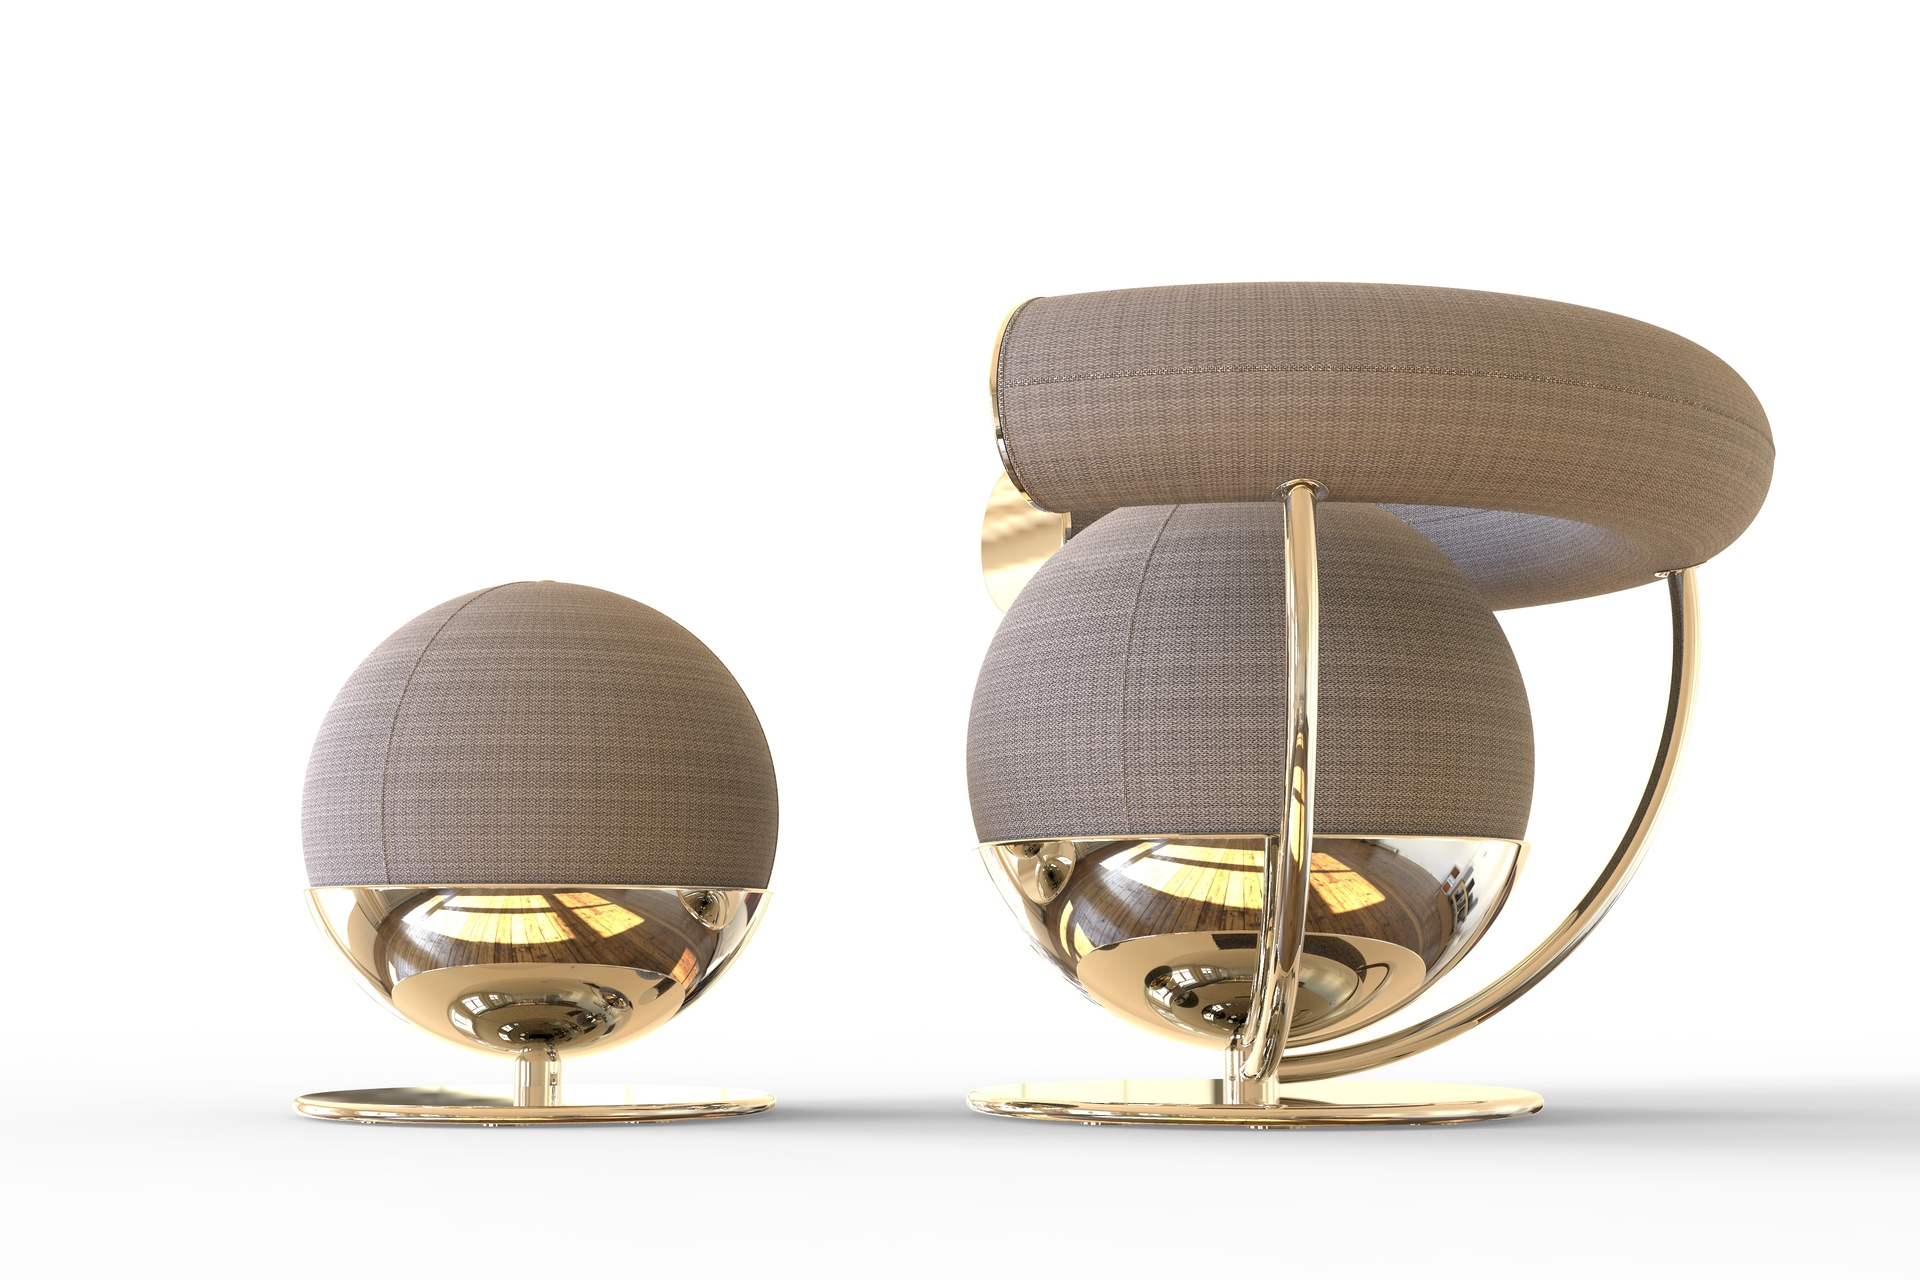 Daniele Toesca: thoughts about the Armchair DT37 & Footstool in Gold 24k